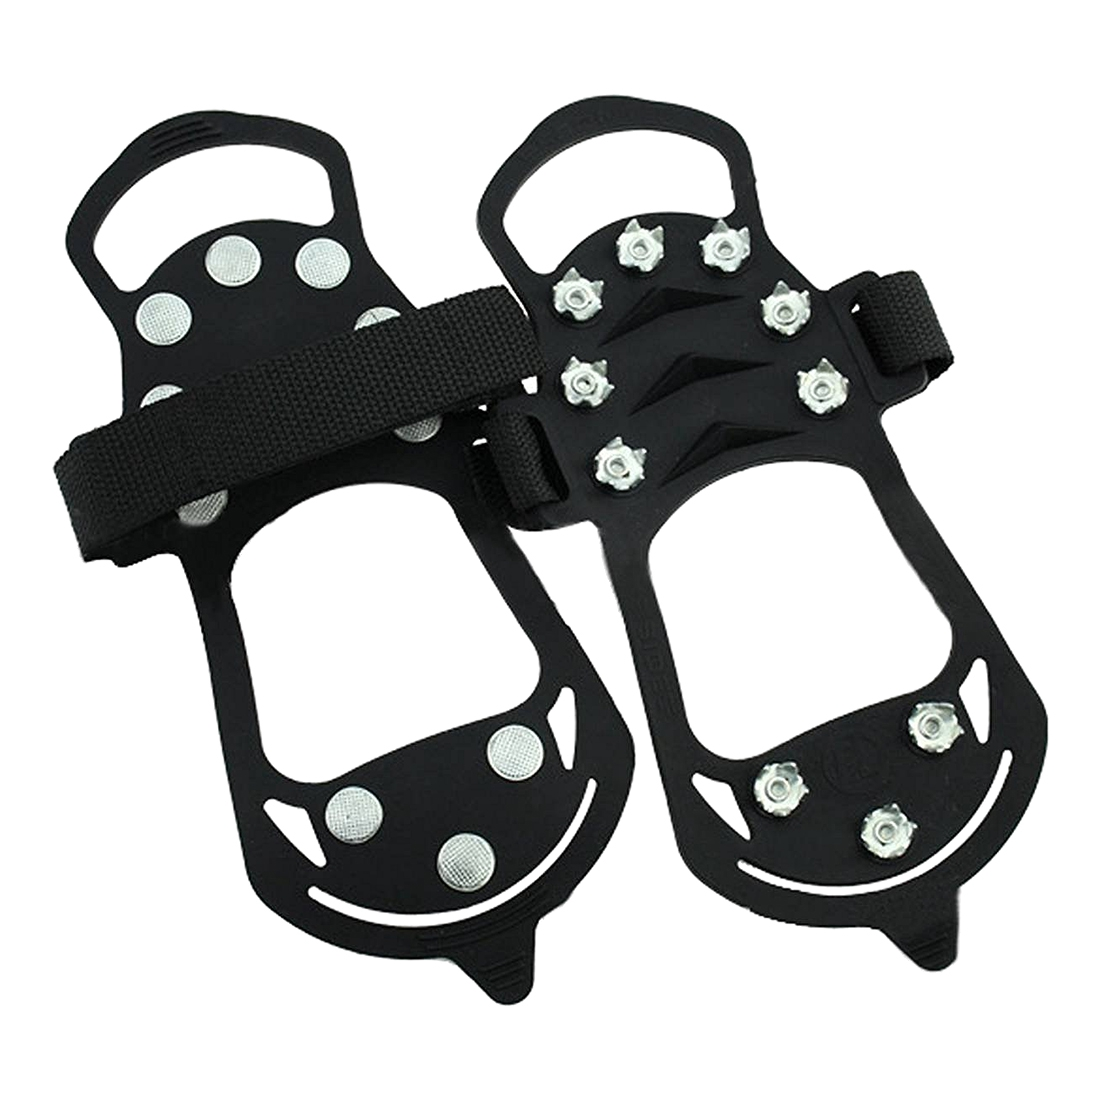 Shoe spikes Shoe claws, anti-slip crampons shoes, spikes Snow chain for the boot